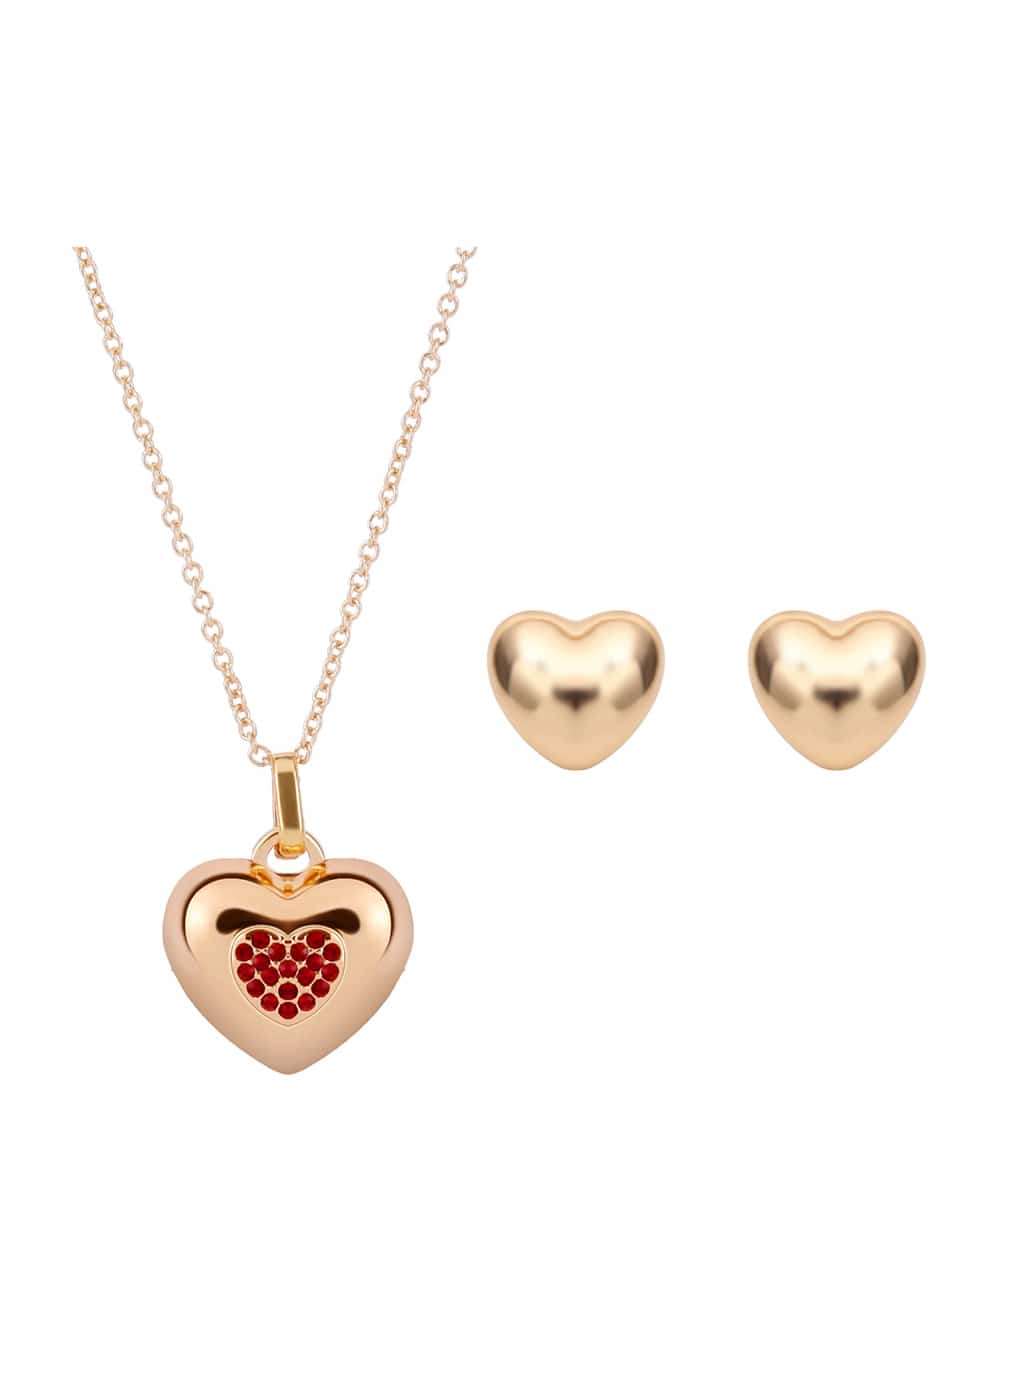 Rhinestone Insert Heart Shaped Necklace & Earrings Set